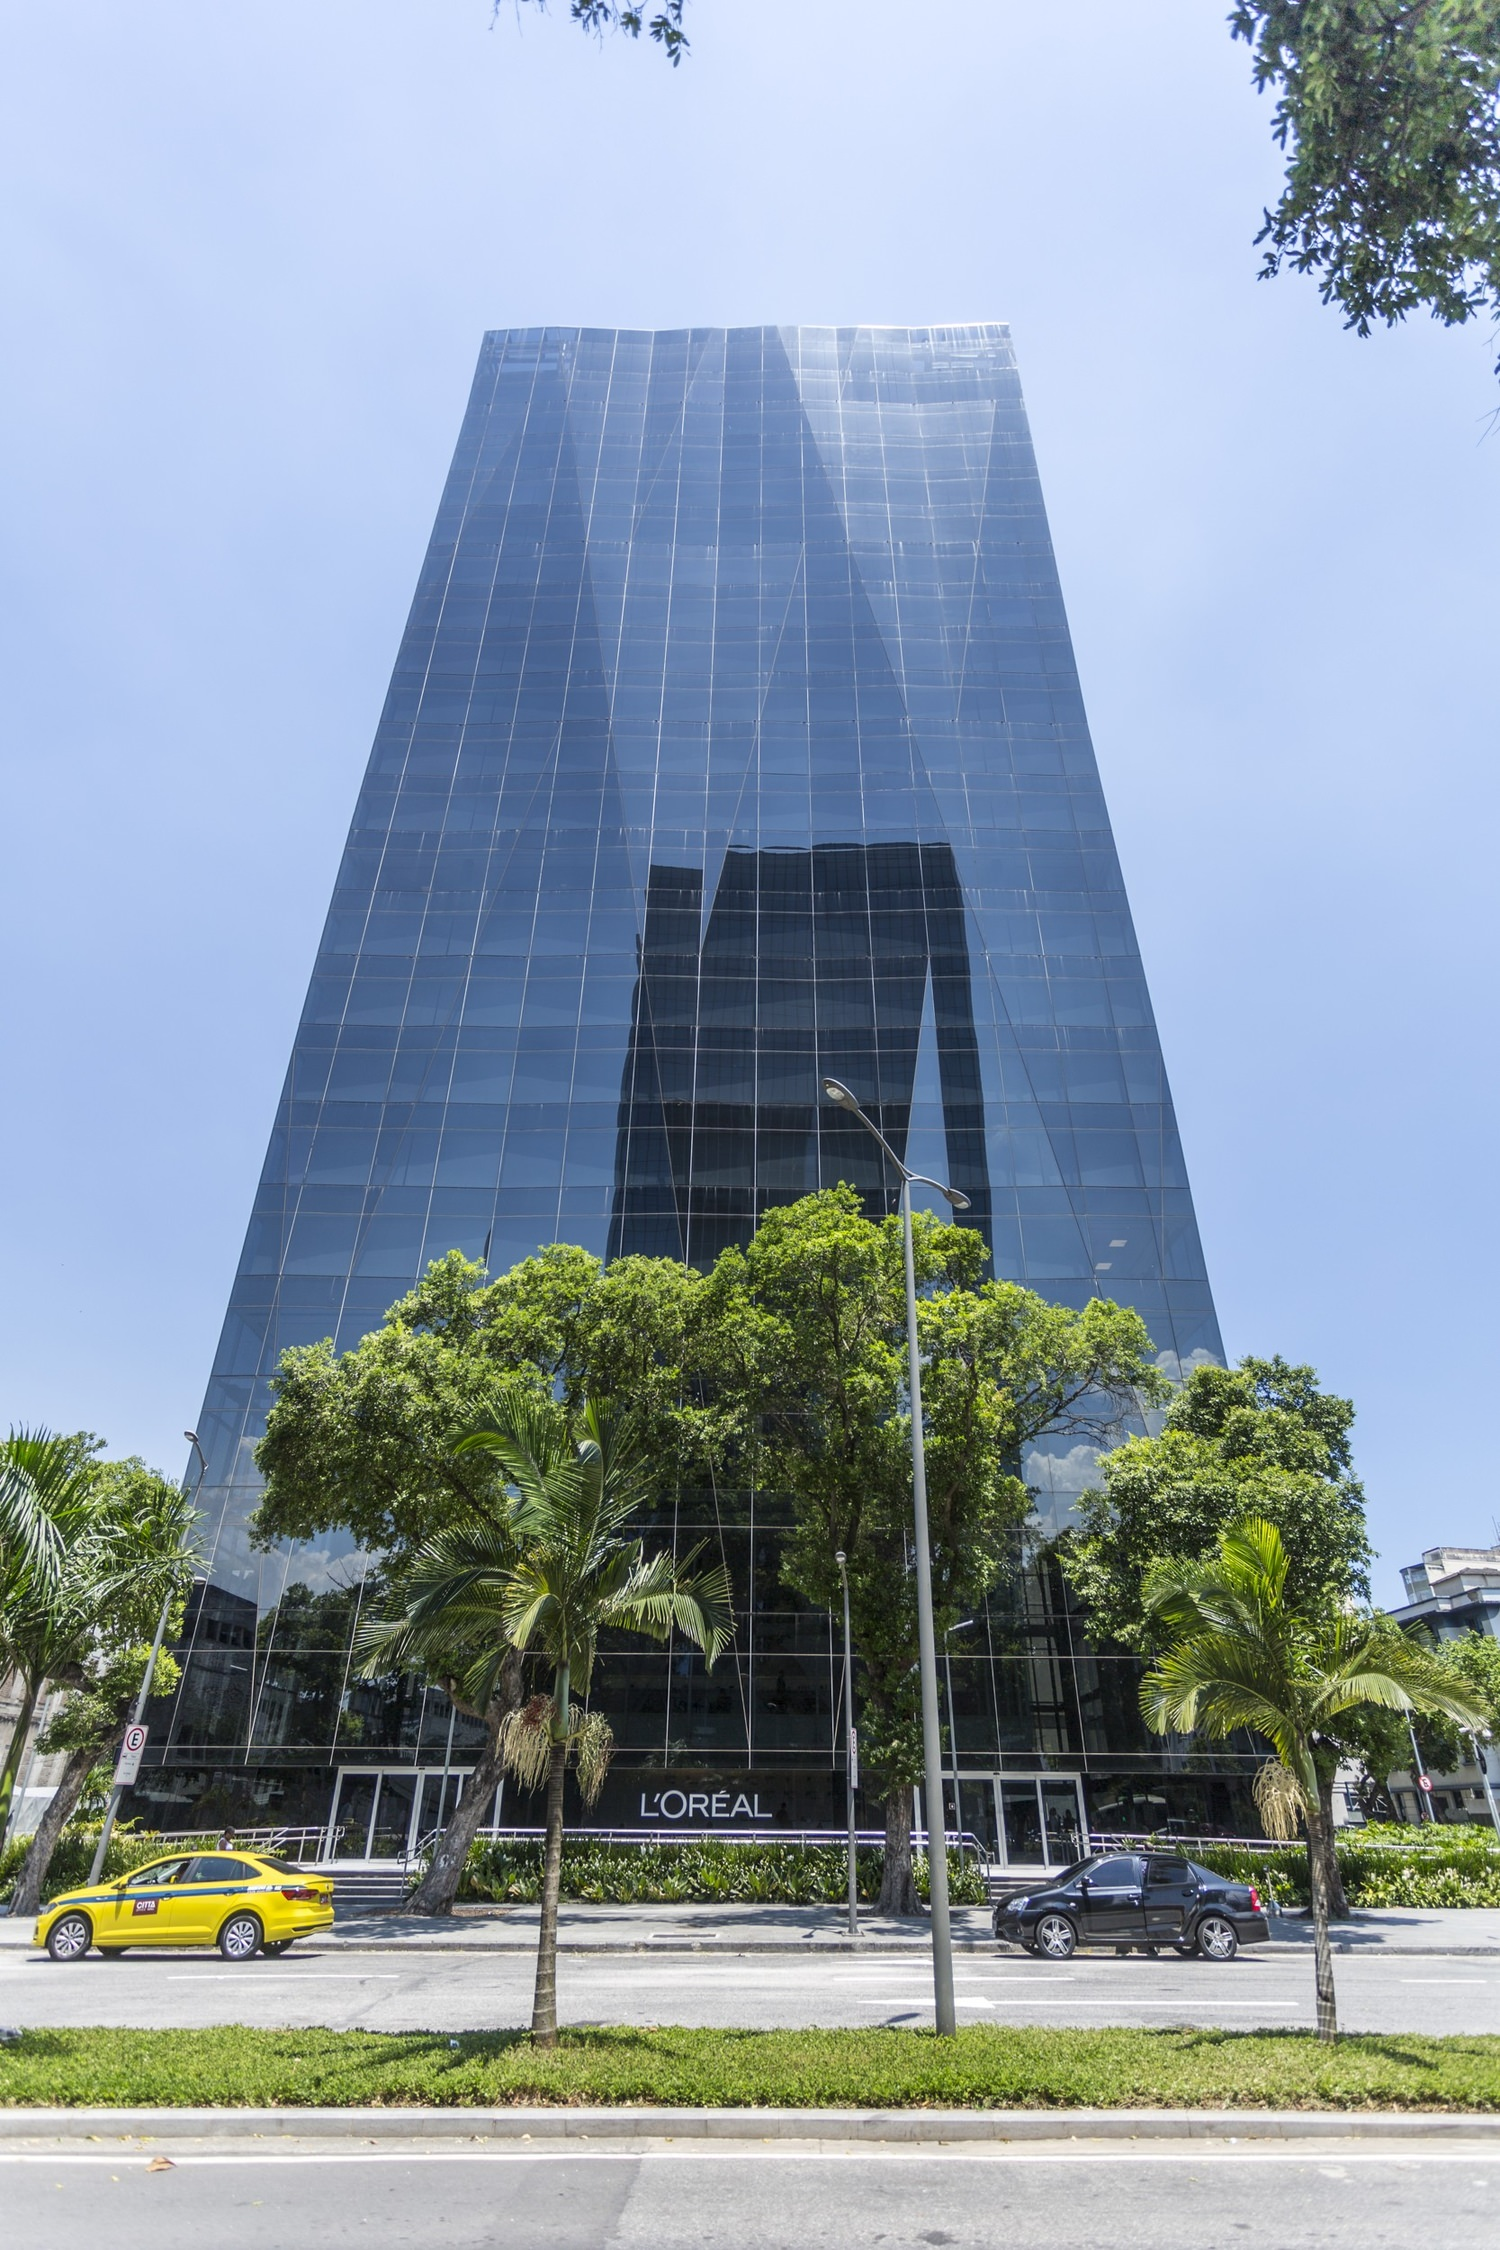 The outdoor view of a tall building with tree in front of the building in the road and has a view of sky with tower